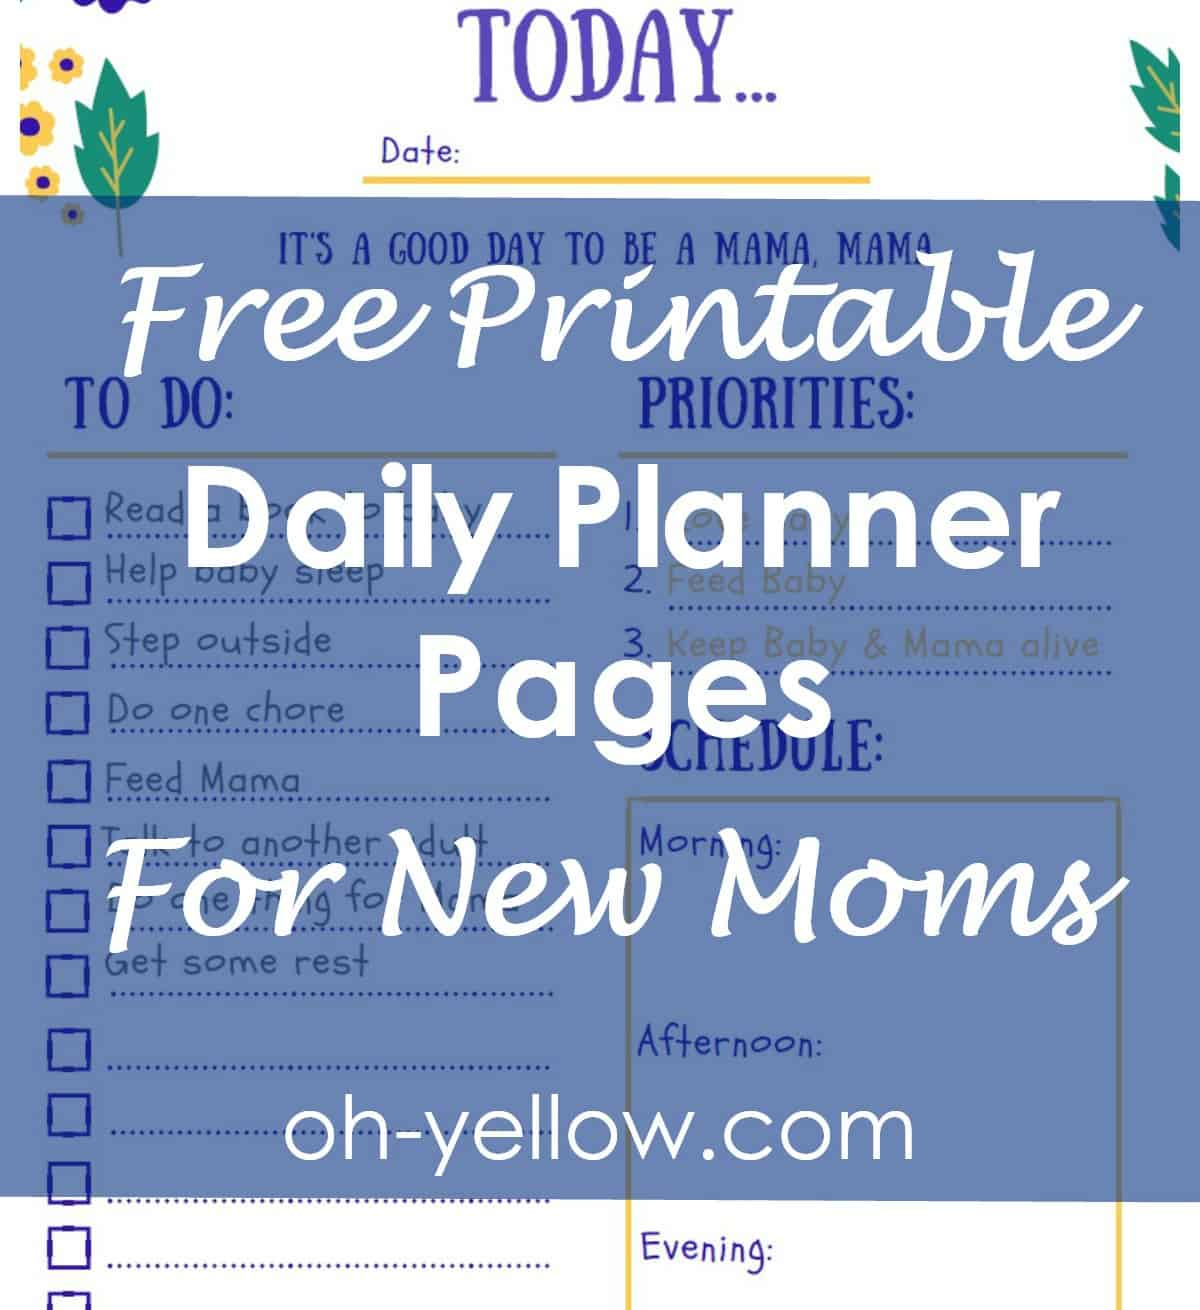 Free printable, daily planner, new mom, mom schedule, stay at home mom, organized, daily checklist, to do list, new baby, maternity leave, postpartum